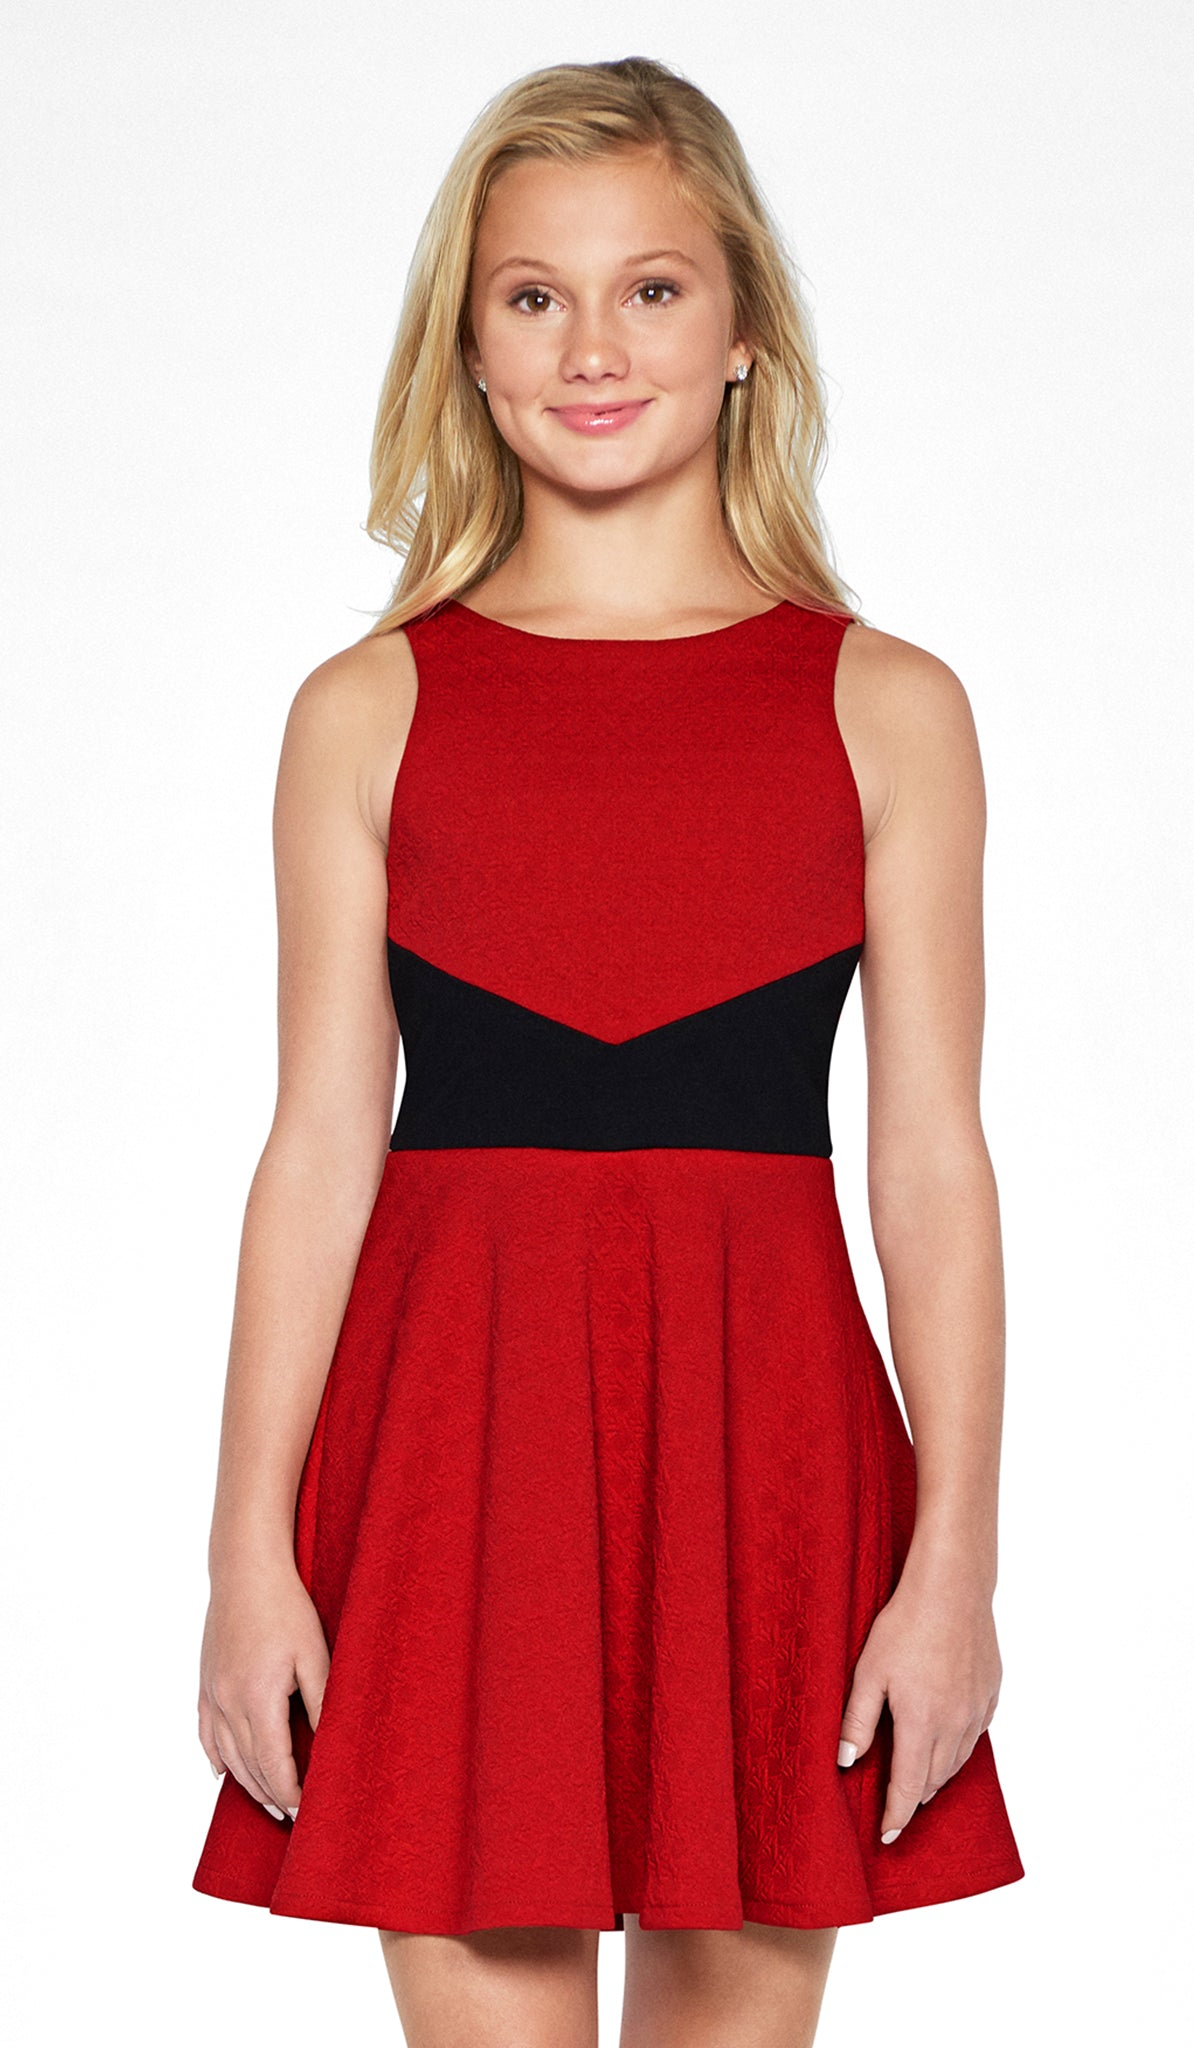 Sally Miller red skater dress